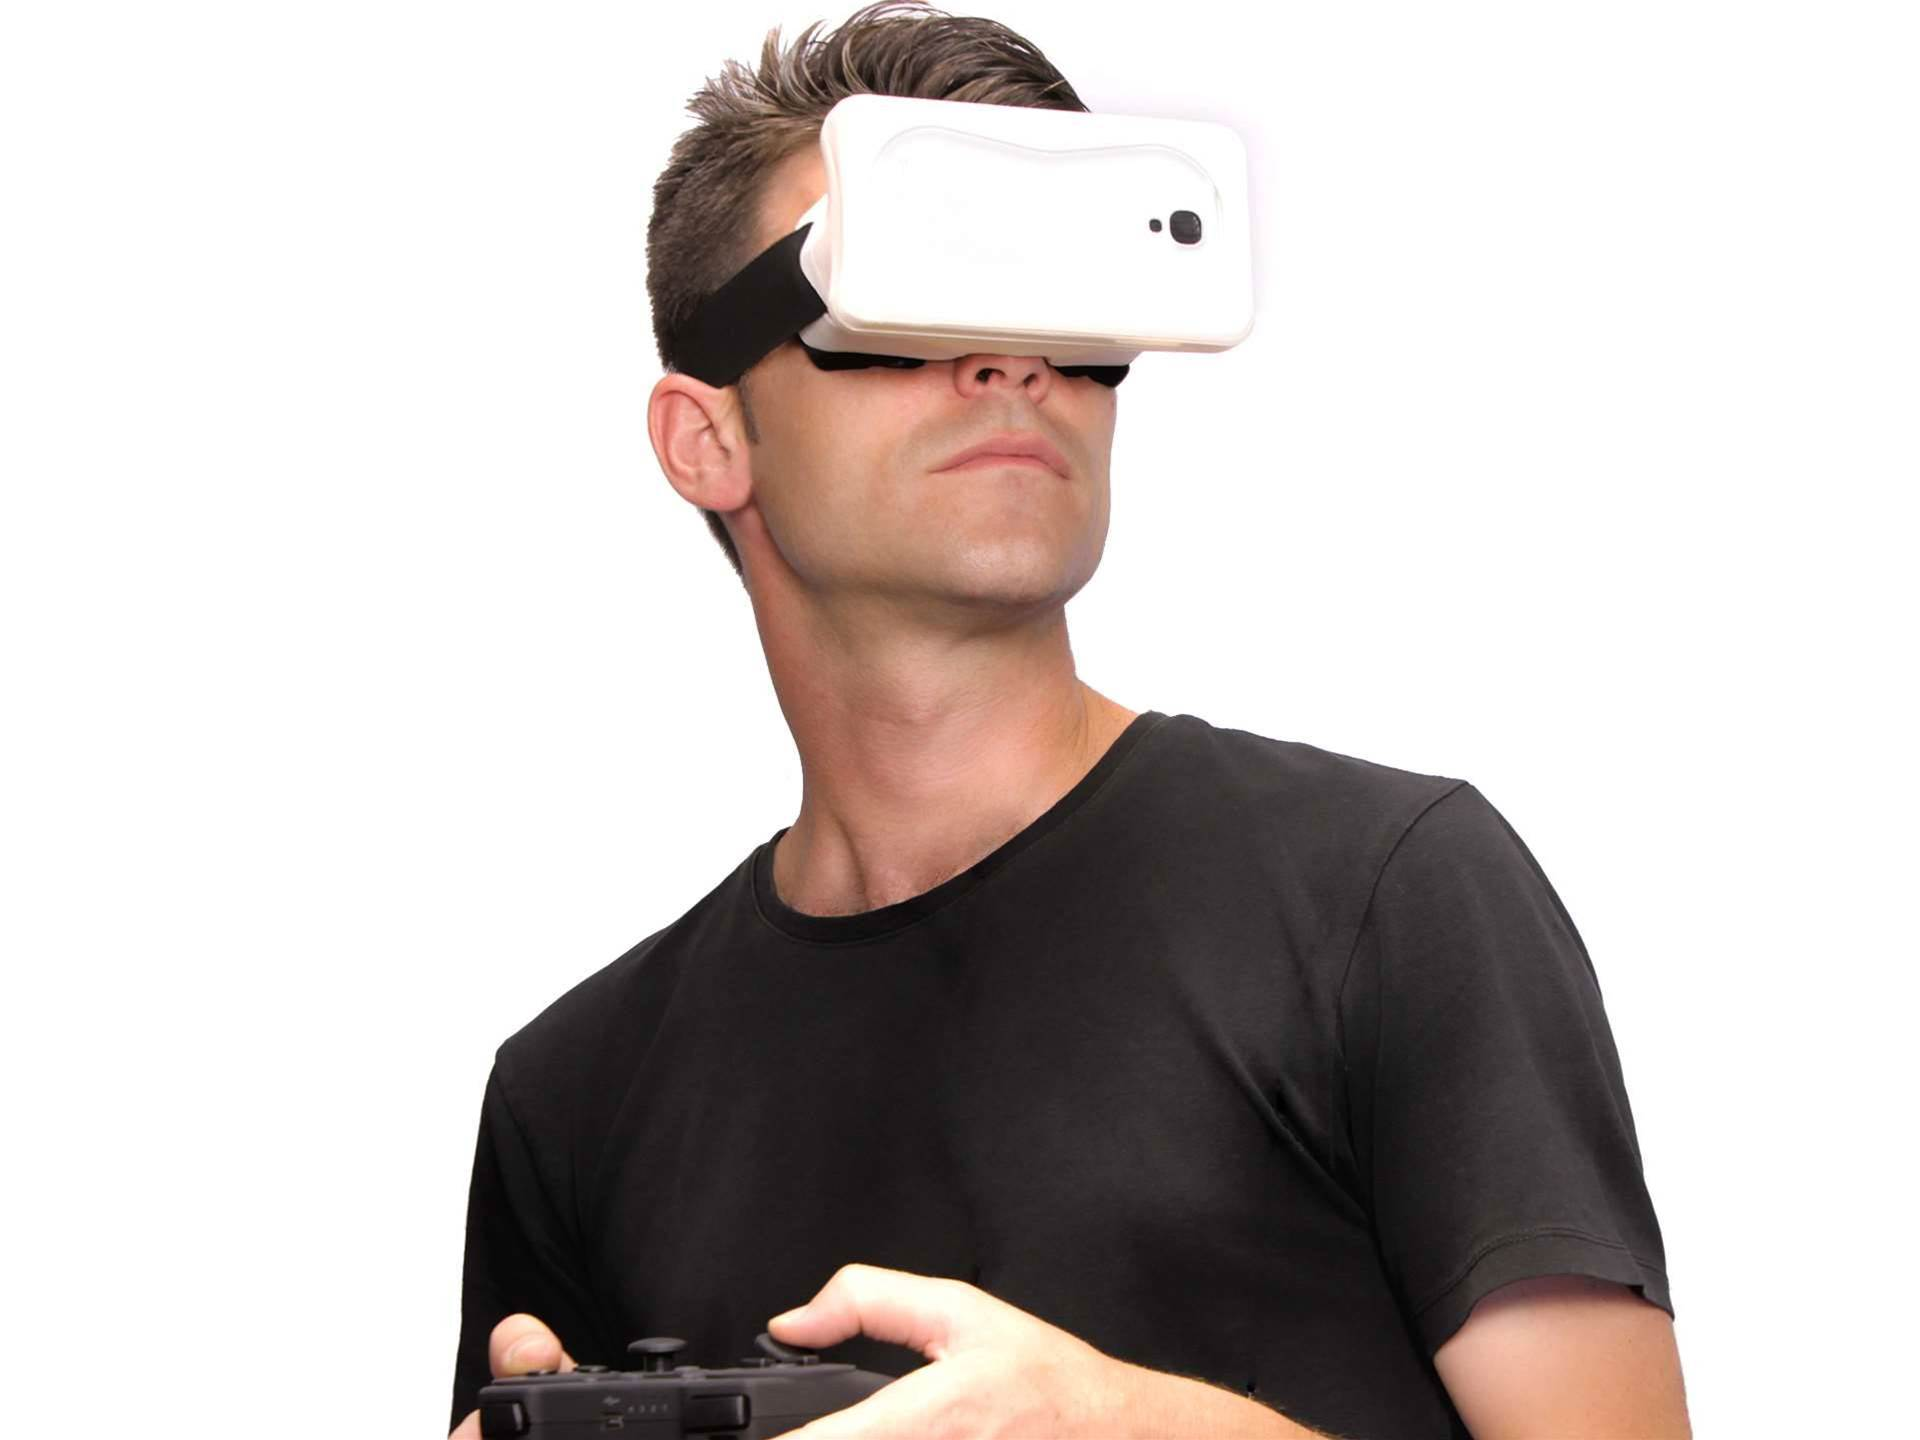 Turn your smartphone into an Oculus Rift clone!